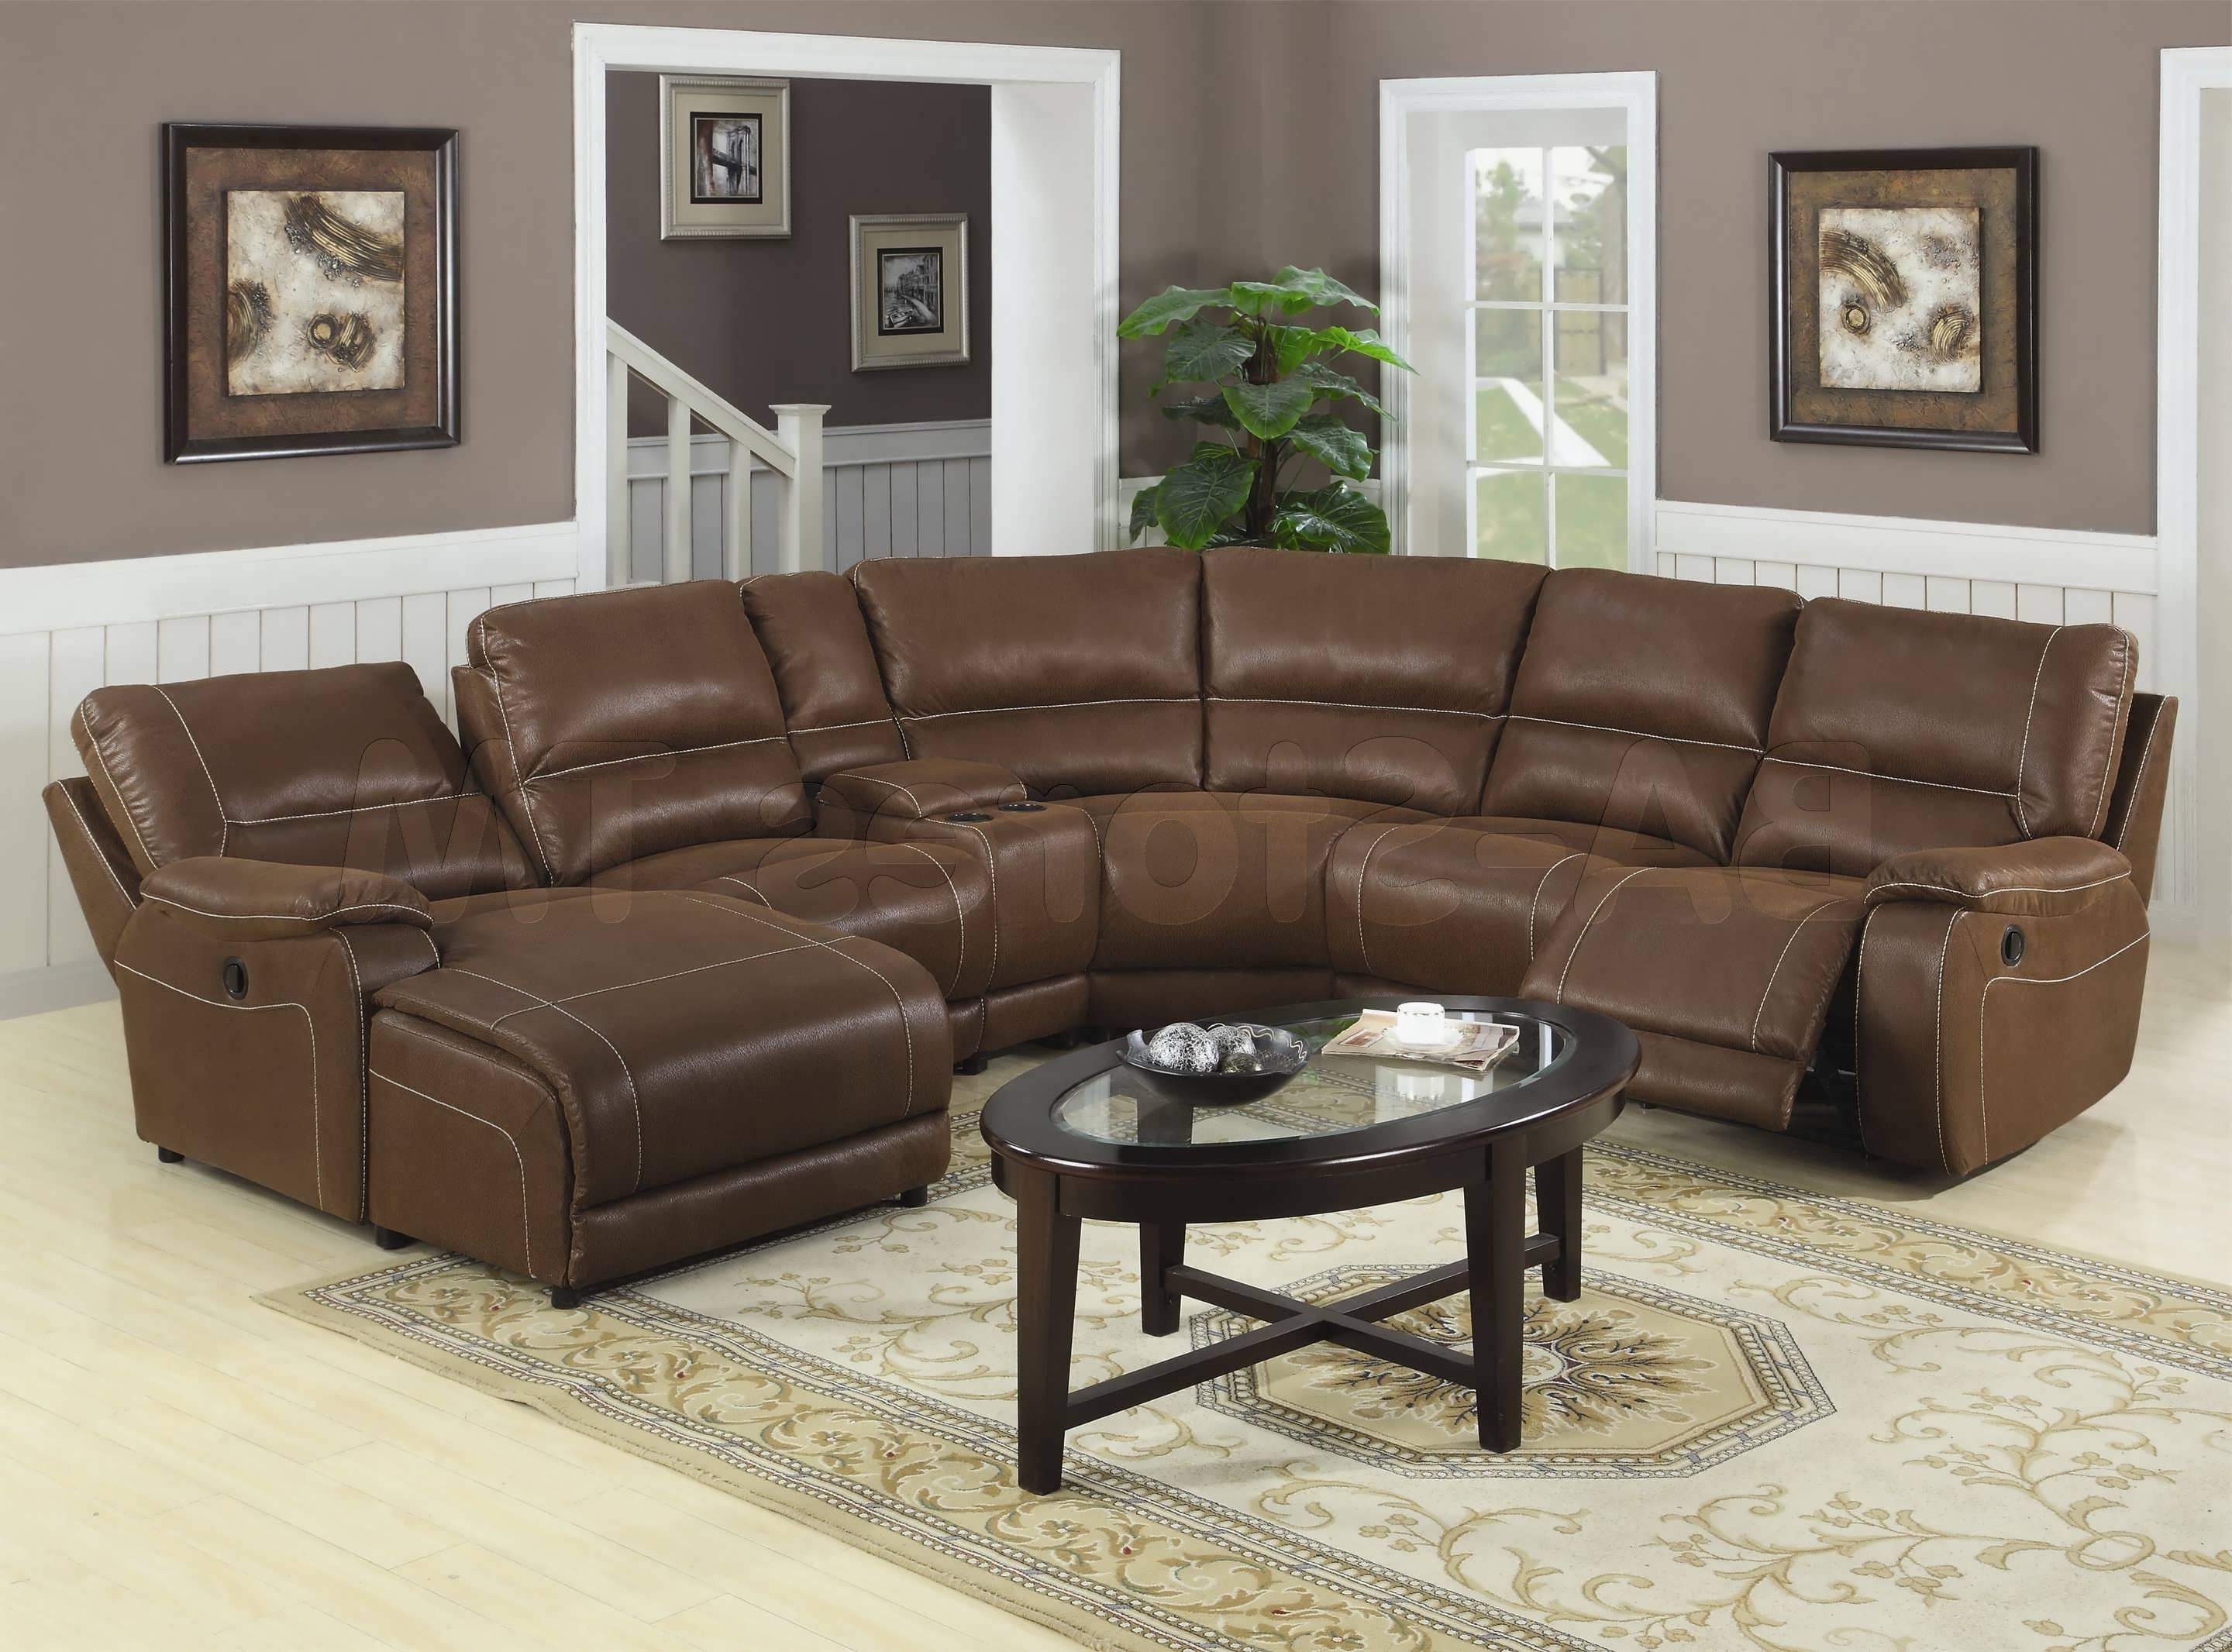 Sectional Sofas With Recliners Pertaining To Well Known Recliners Chairs & Sofa : Fold Out Couch Sectional Sofas With (View 13 of 15)